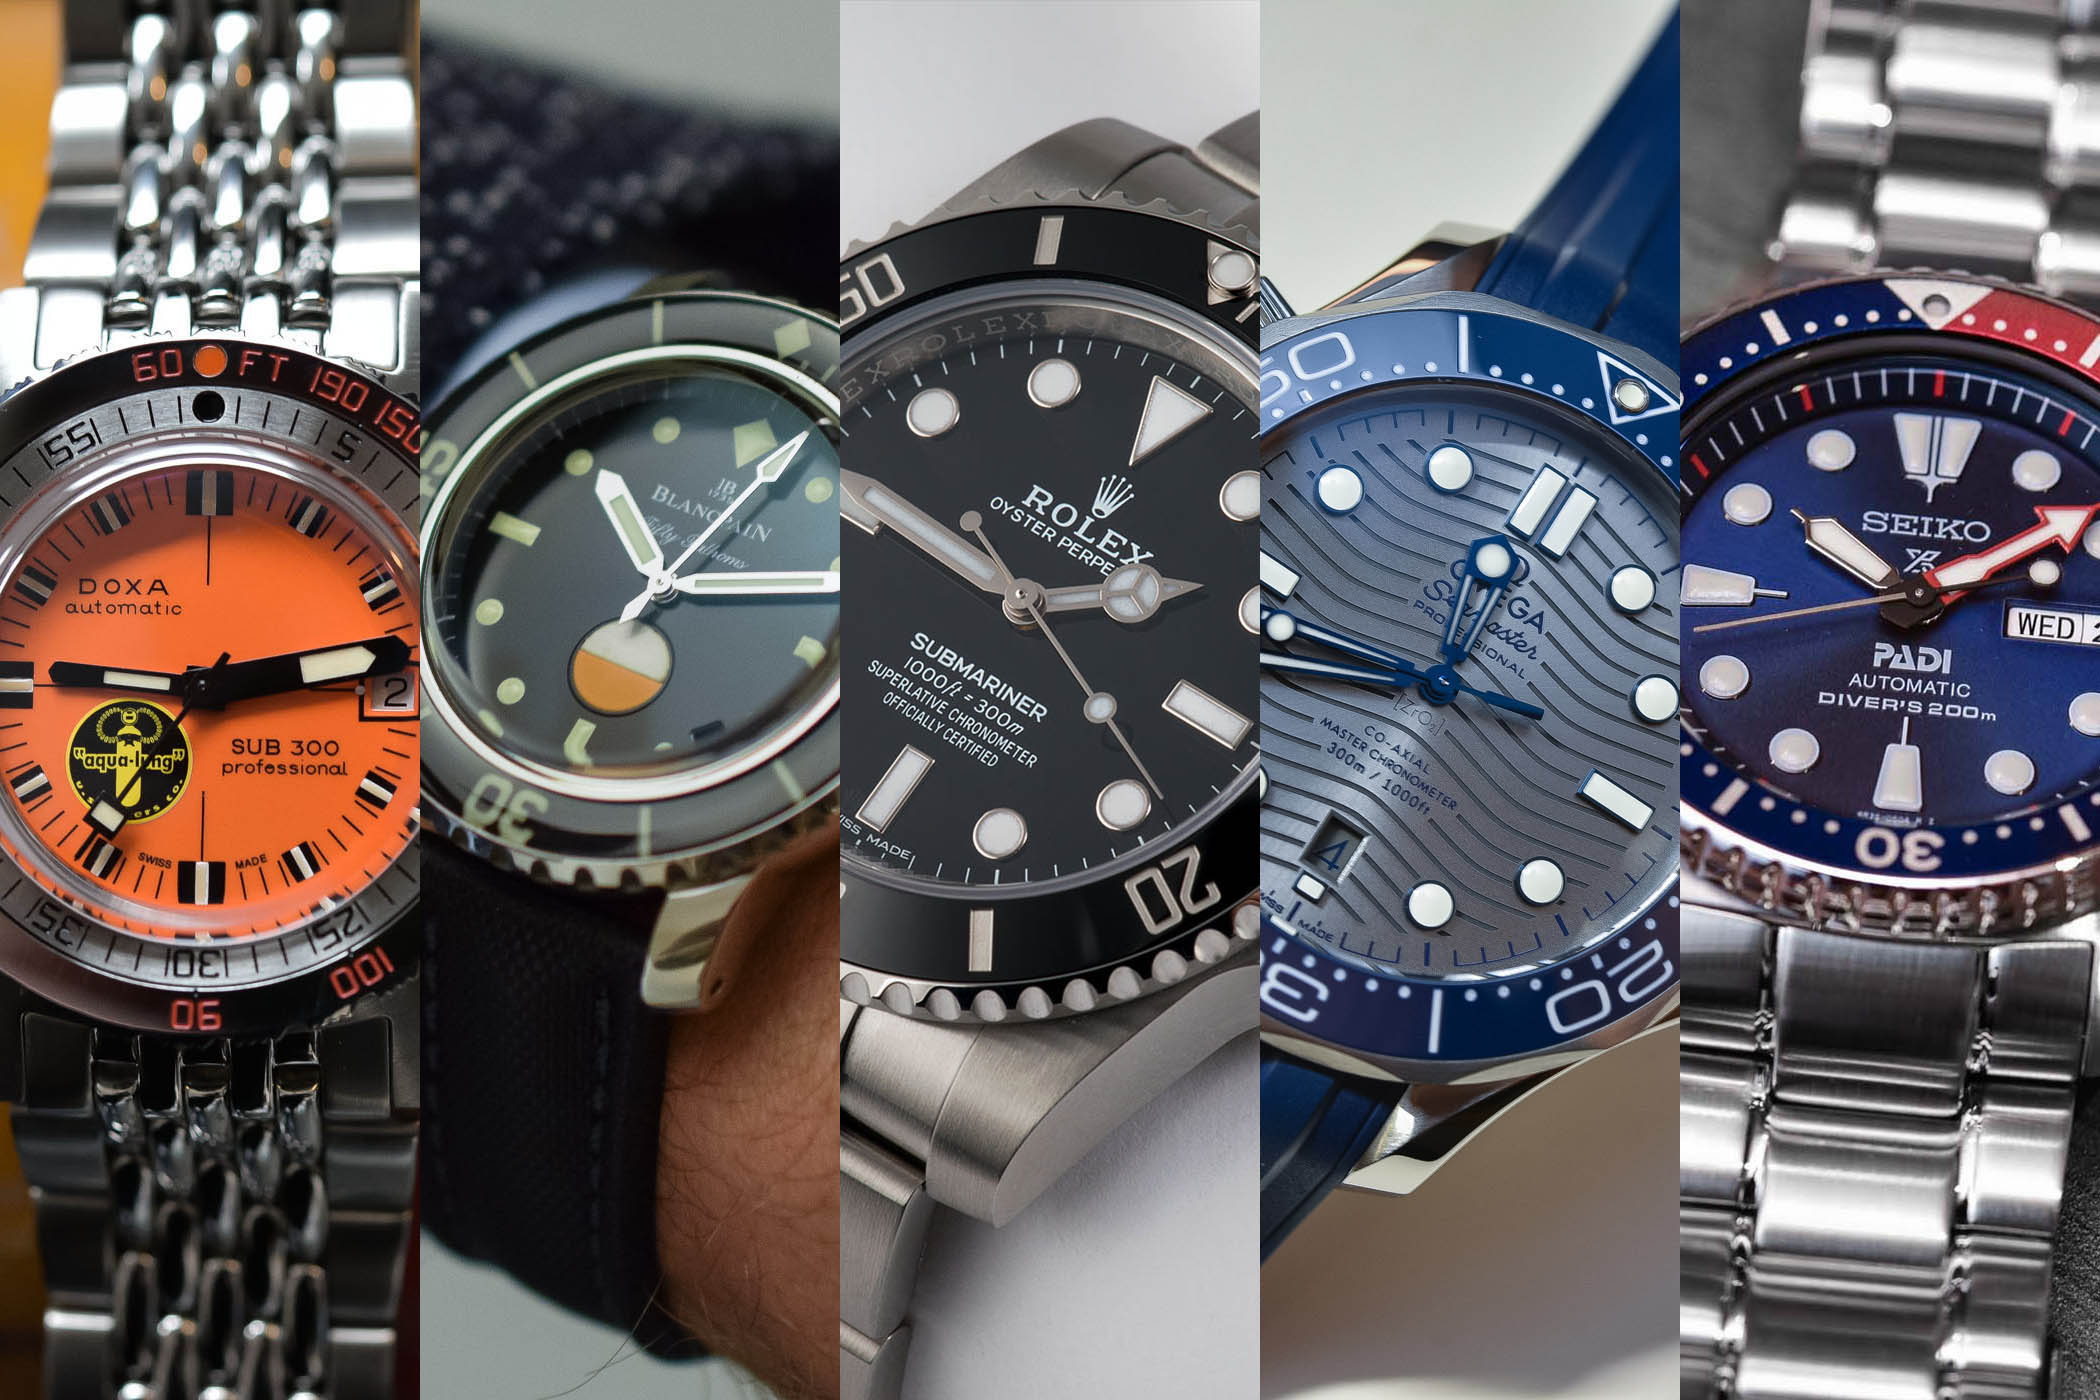 ecdef4d6f 5 of The Most Iconic Dive Watches You Can Buy in 2018 - Monochrome ...